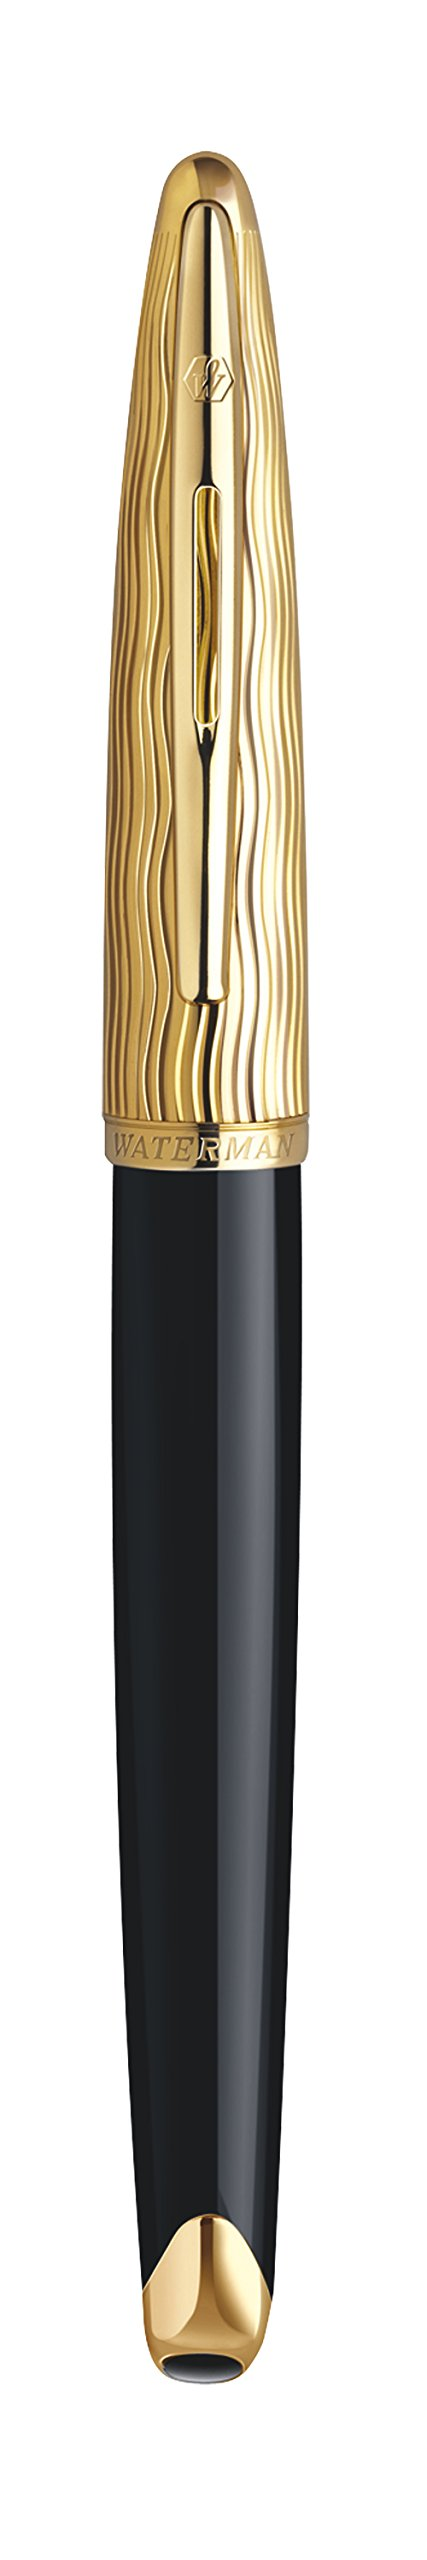 Waterman Carène Essential Rollerball Pen, Gloss Black Wave with 23k Gold Clip, Fine Point with Black Ink Cartridge, Gift Box by Waterman (Image #3)